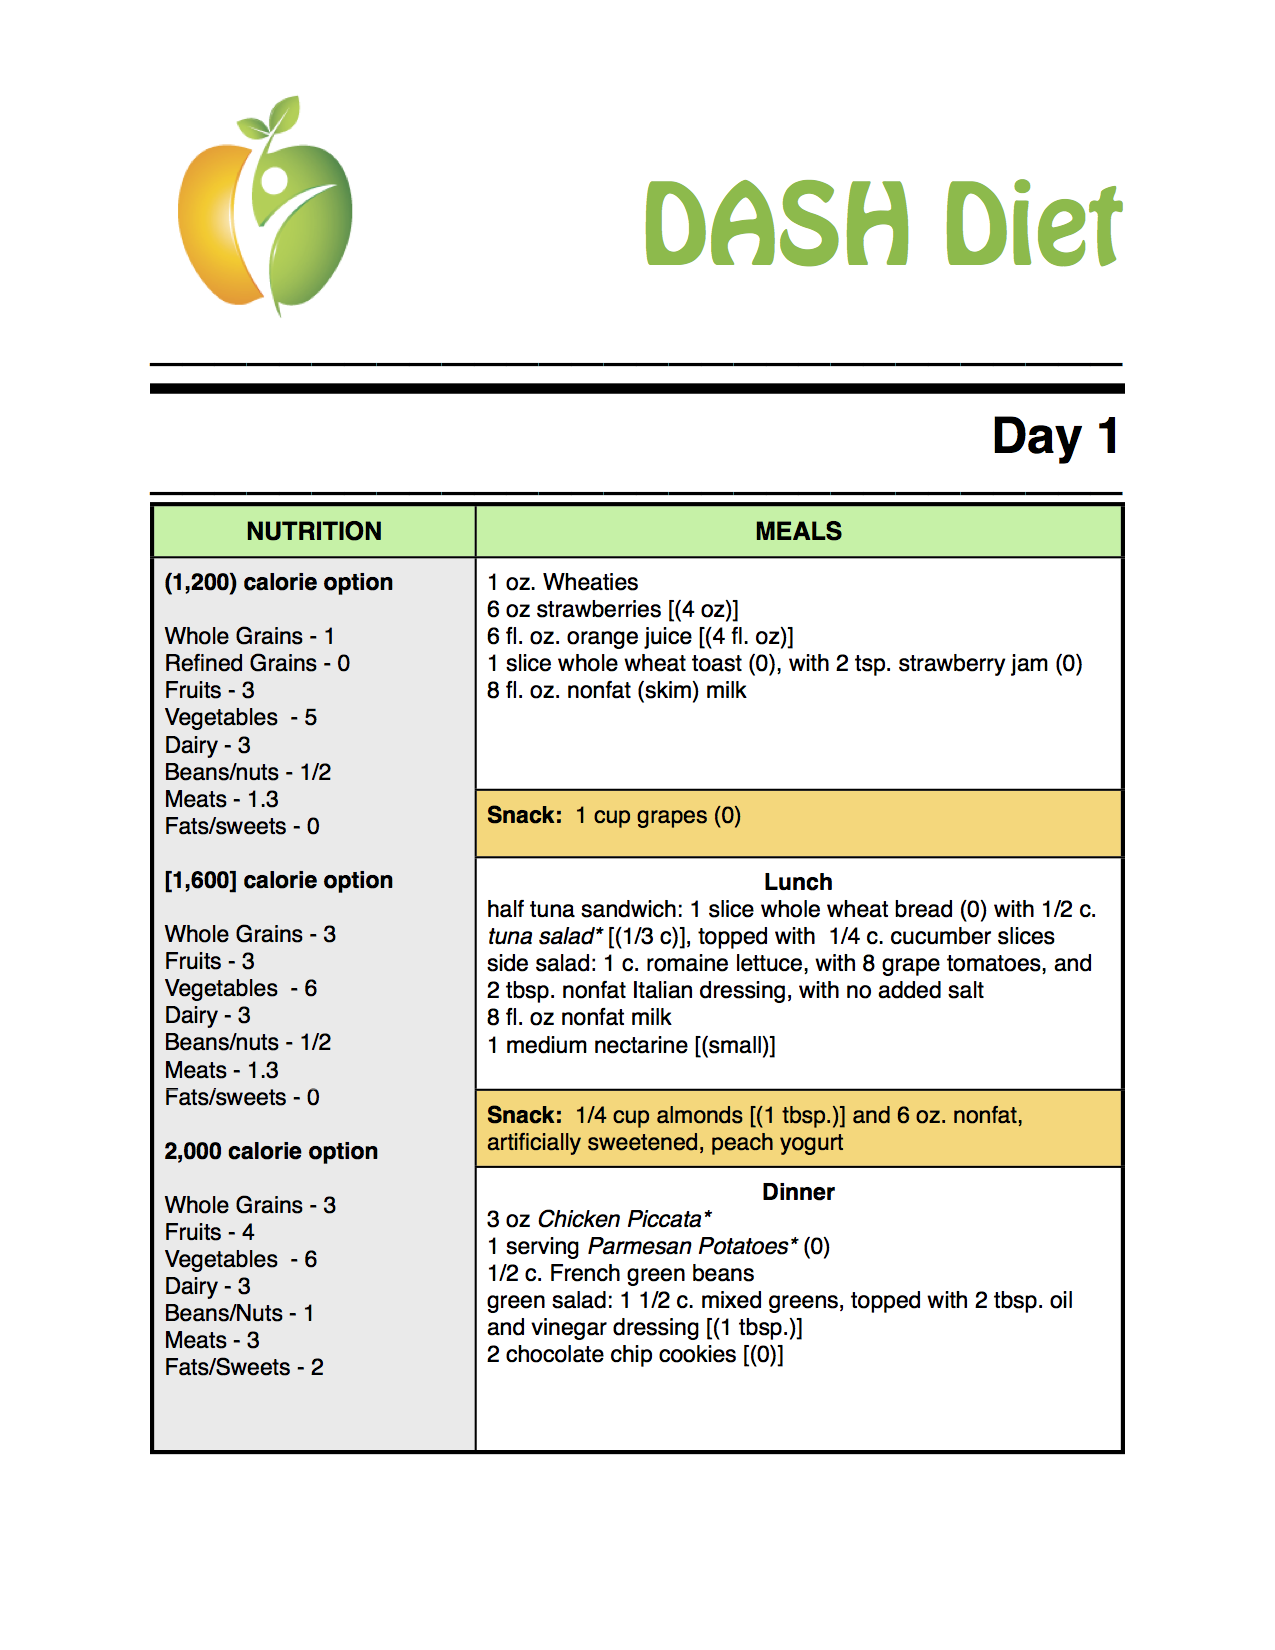 Pin By Debbie Dykes On Health Fitness In 2019 Pinterest Dash